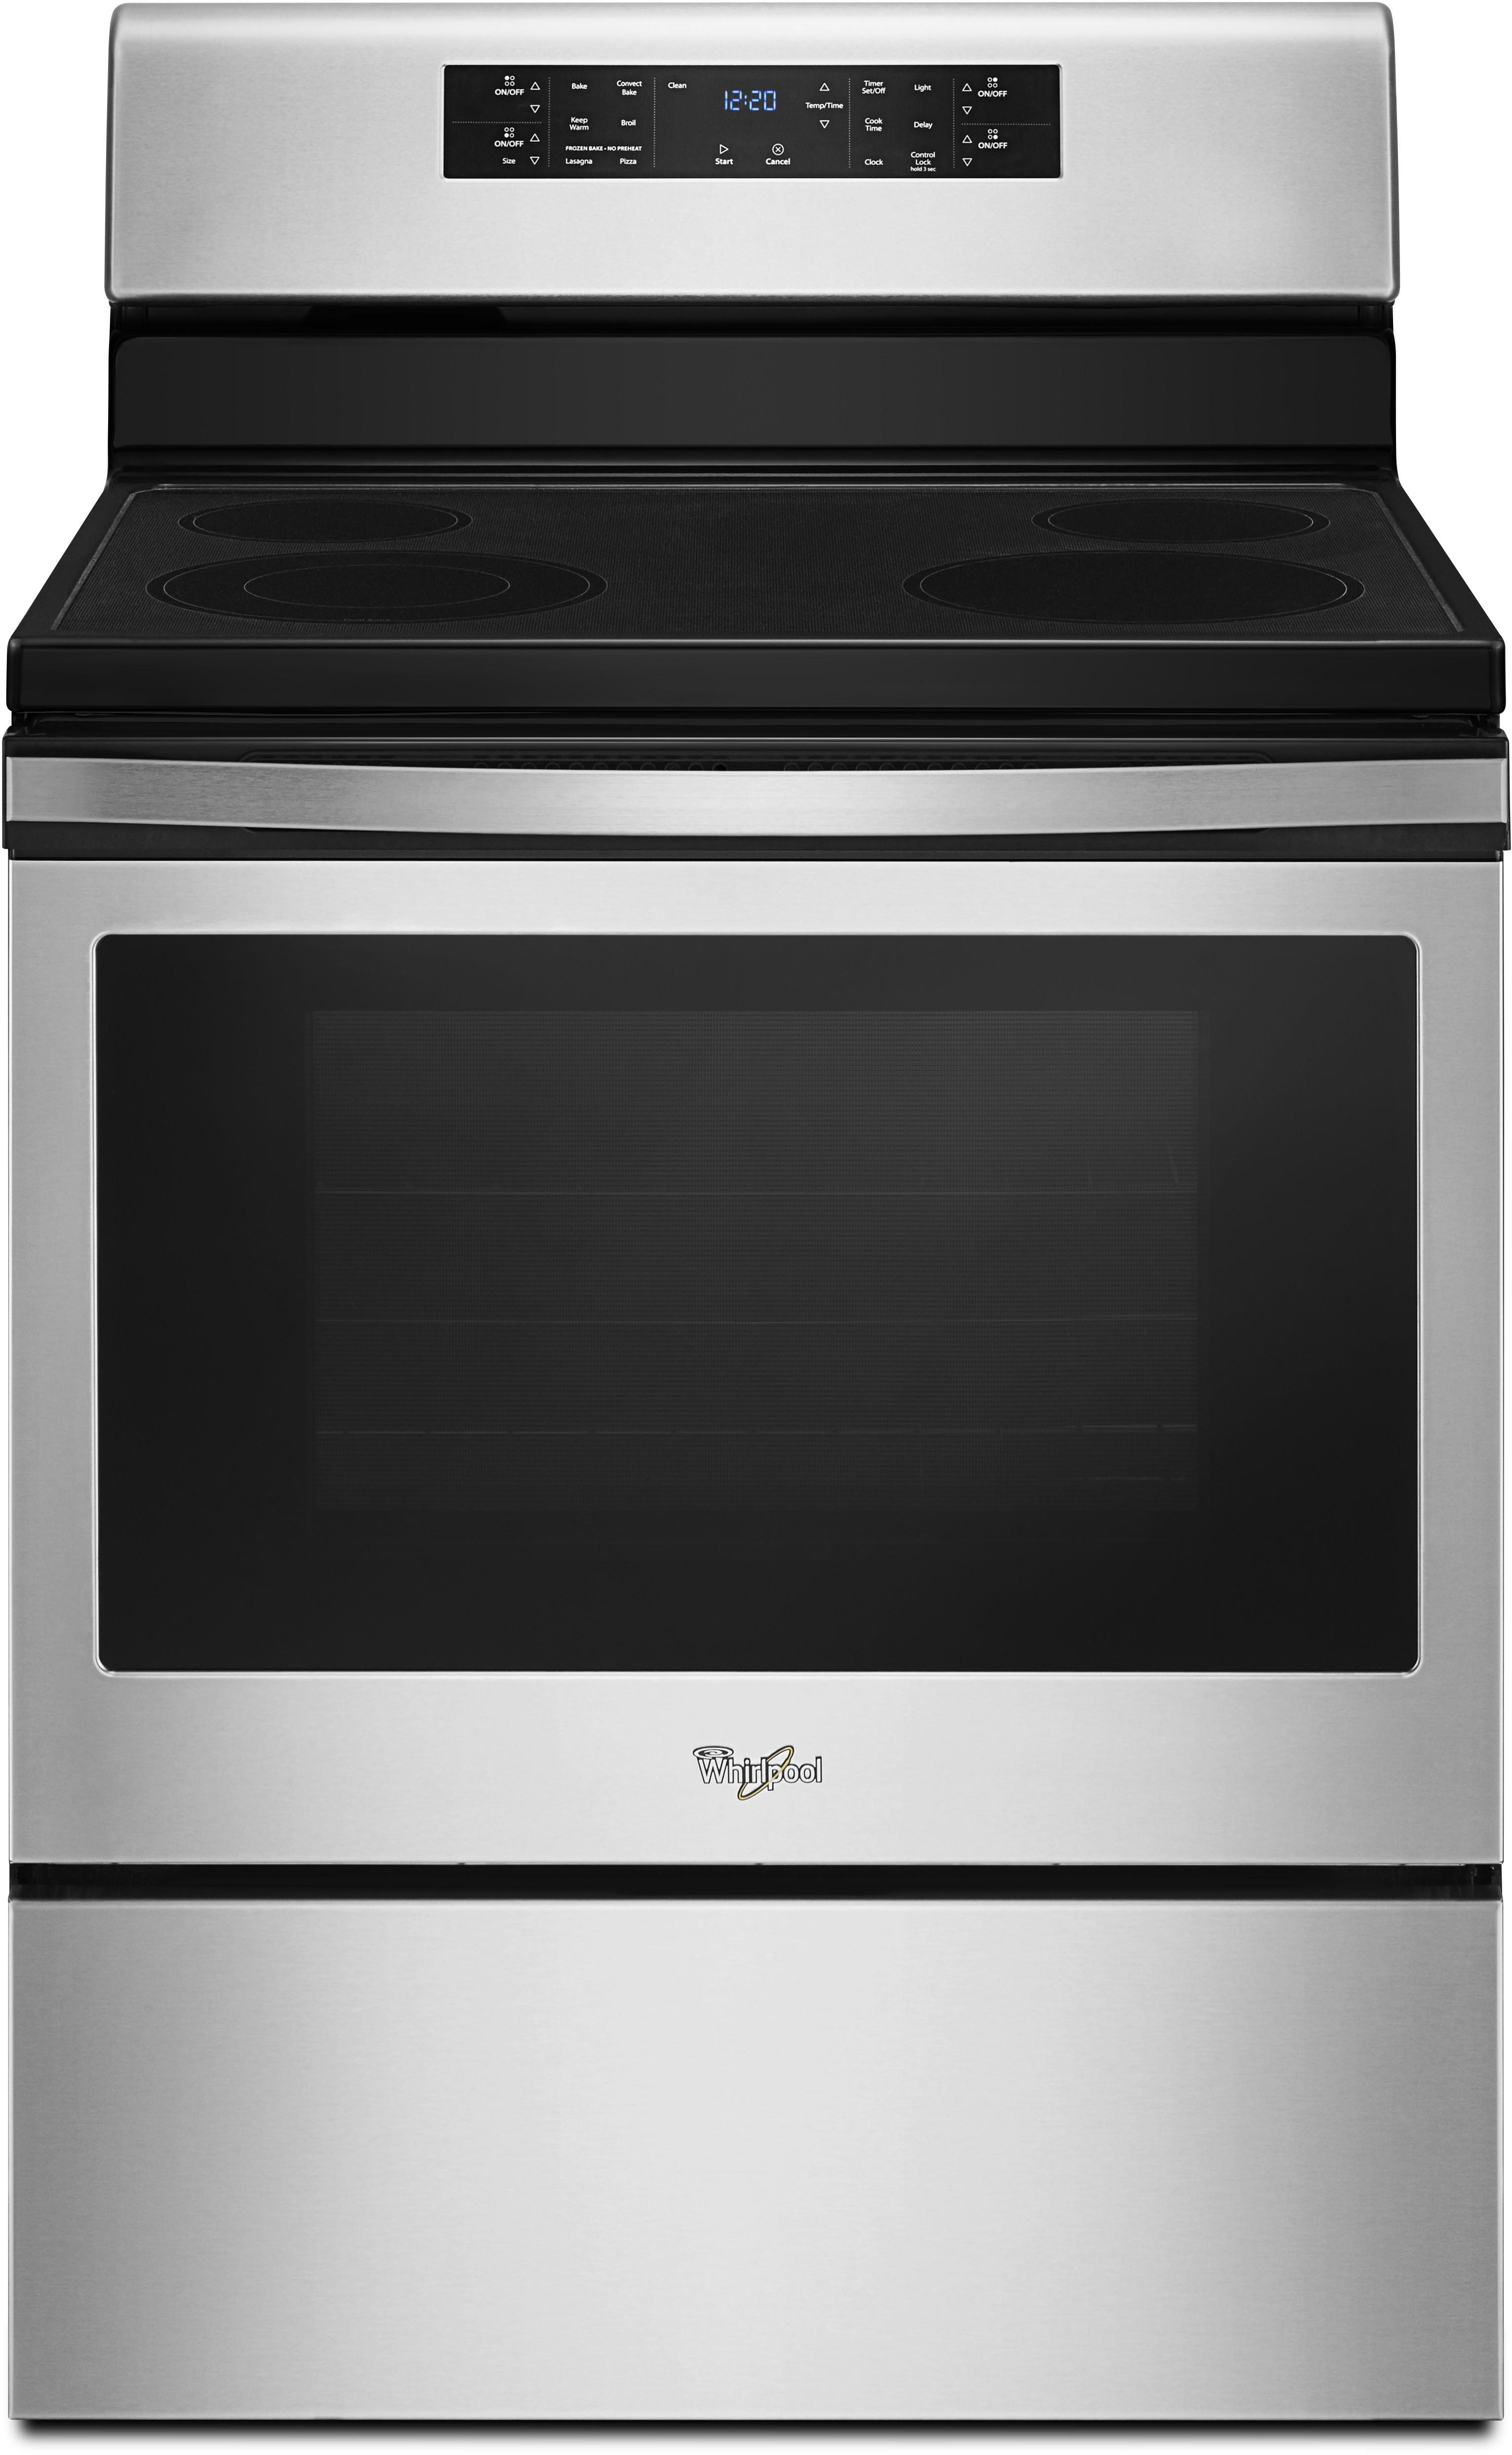 Whirlpool Wfe520s0fs 30 Inch Electric Range With 5 3 Cu